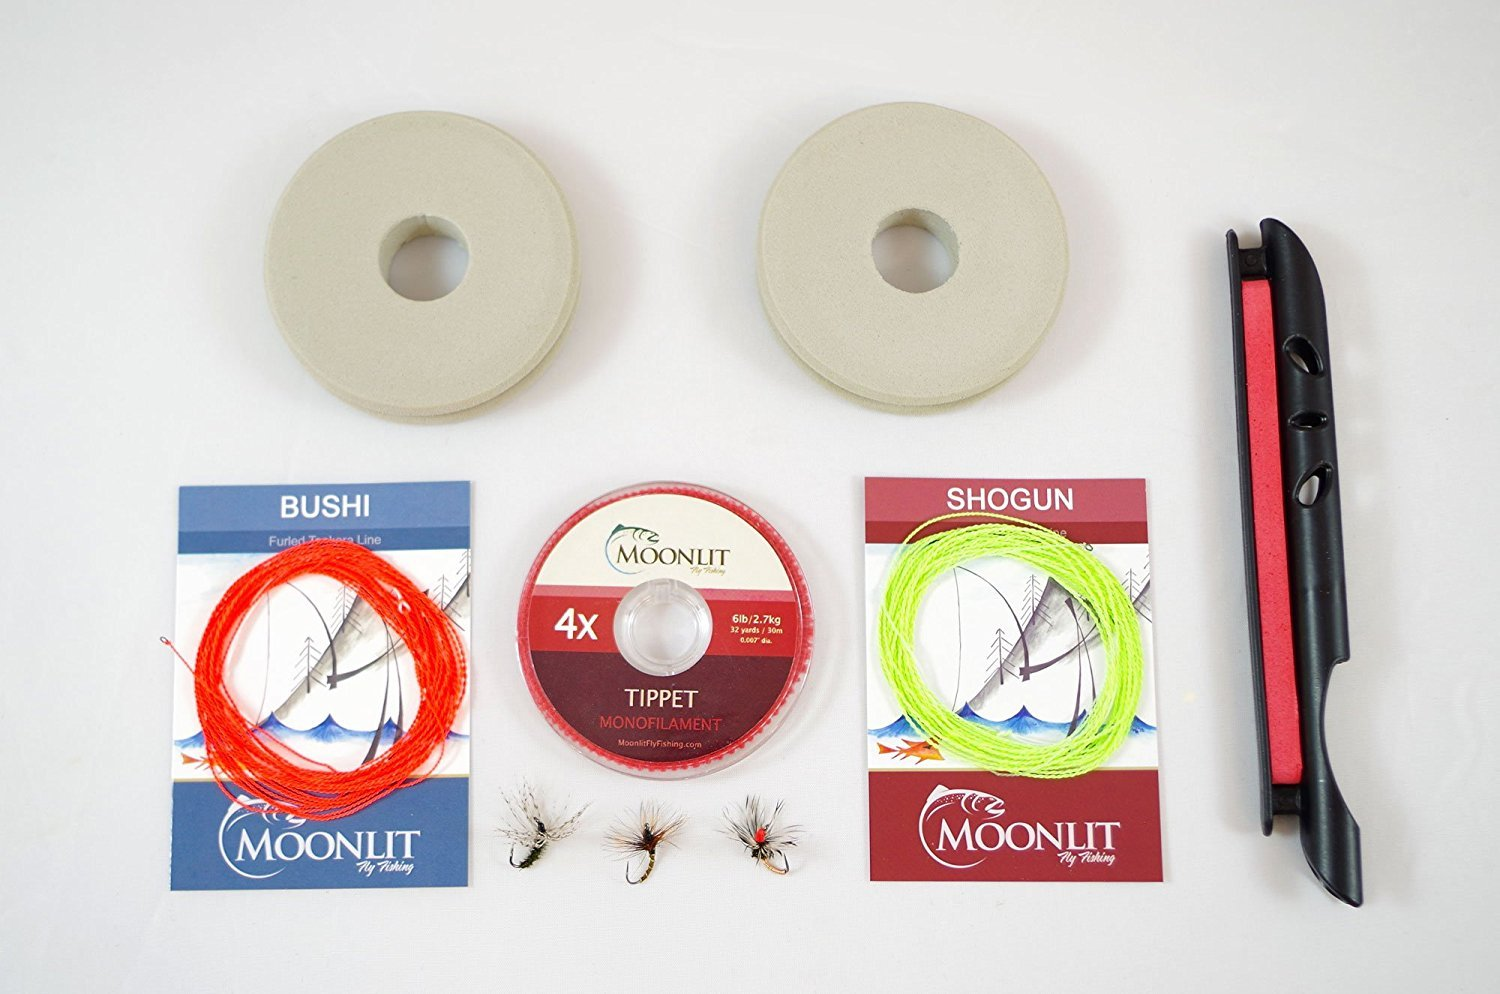 【在庫あり/即出荷可】 (2.7m) - with Ultimate B01MYBC456 Tenkara Starter Tenkara Kit with 2 Furled Lines B01MYBC456, ライト館:1bd78550 --- a0267596.xsph.ru